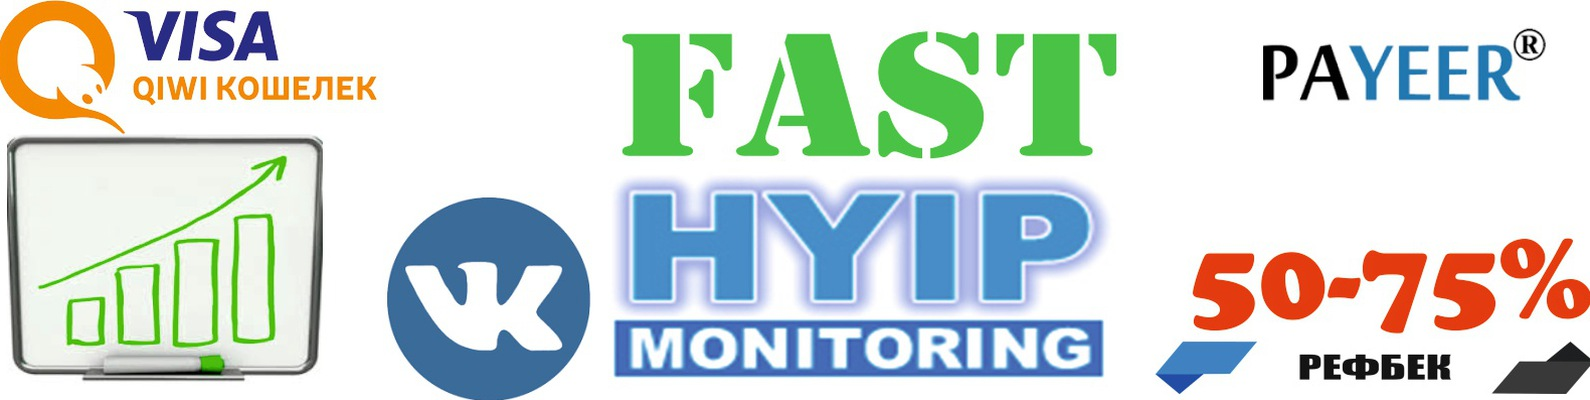 Hyip monitor edu-pension